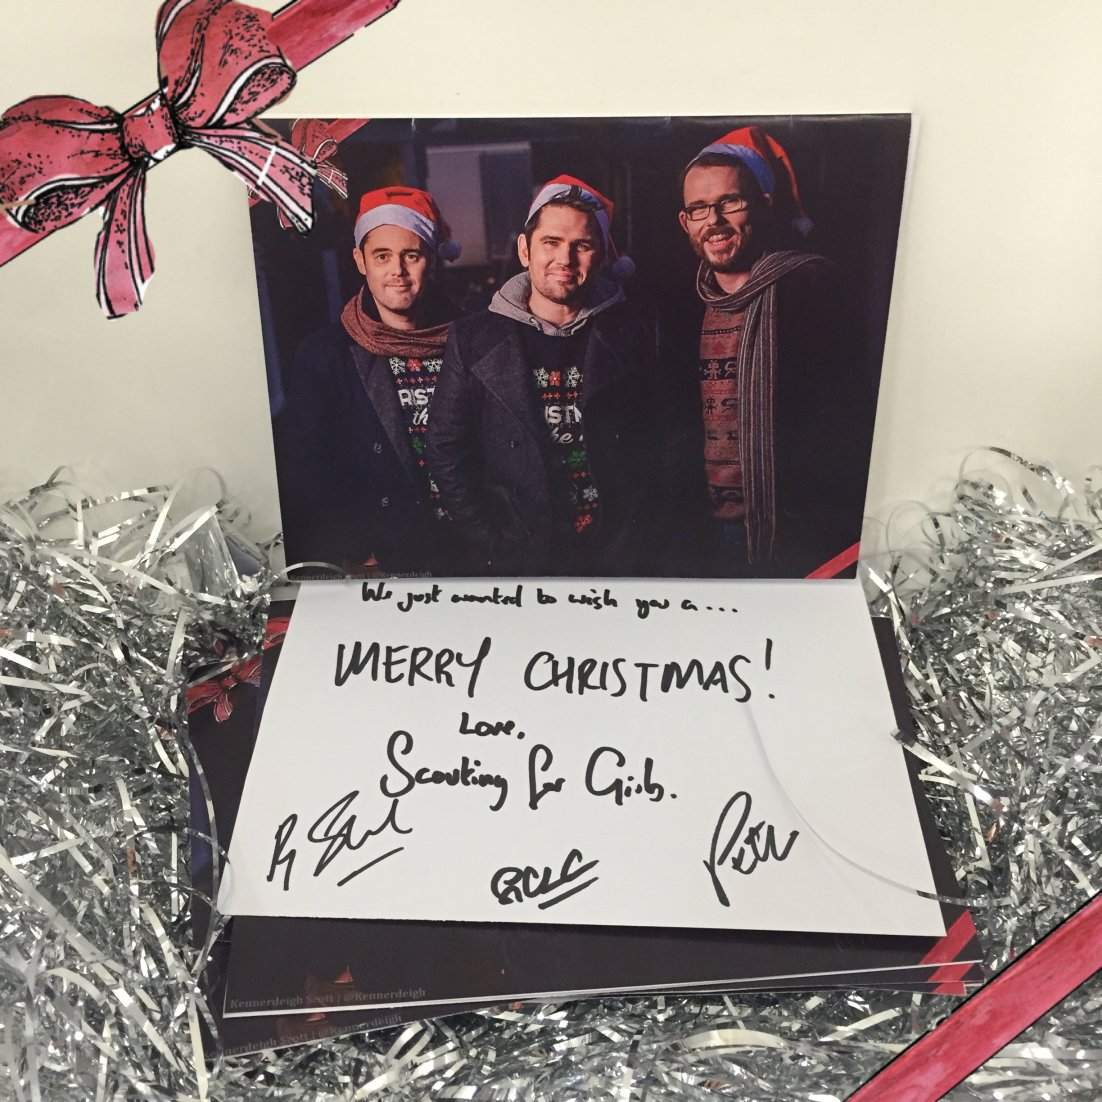 DEC 15. Sending off a few Christmas cards today. Who wants one? RT & we'll pick some winners later tonight! #SFGXMAS https://t.co/nEj9L9UVPj